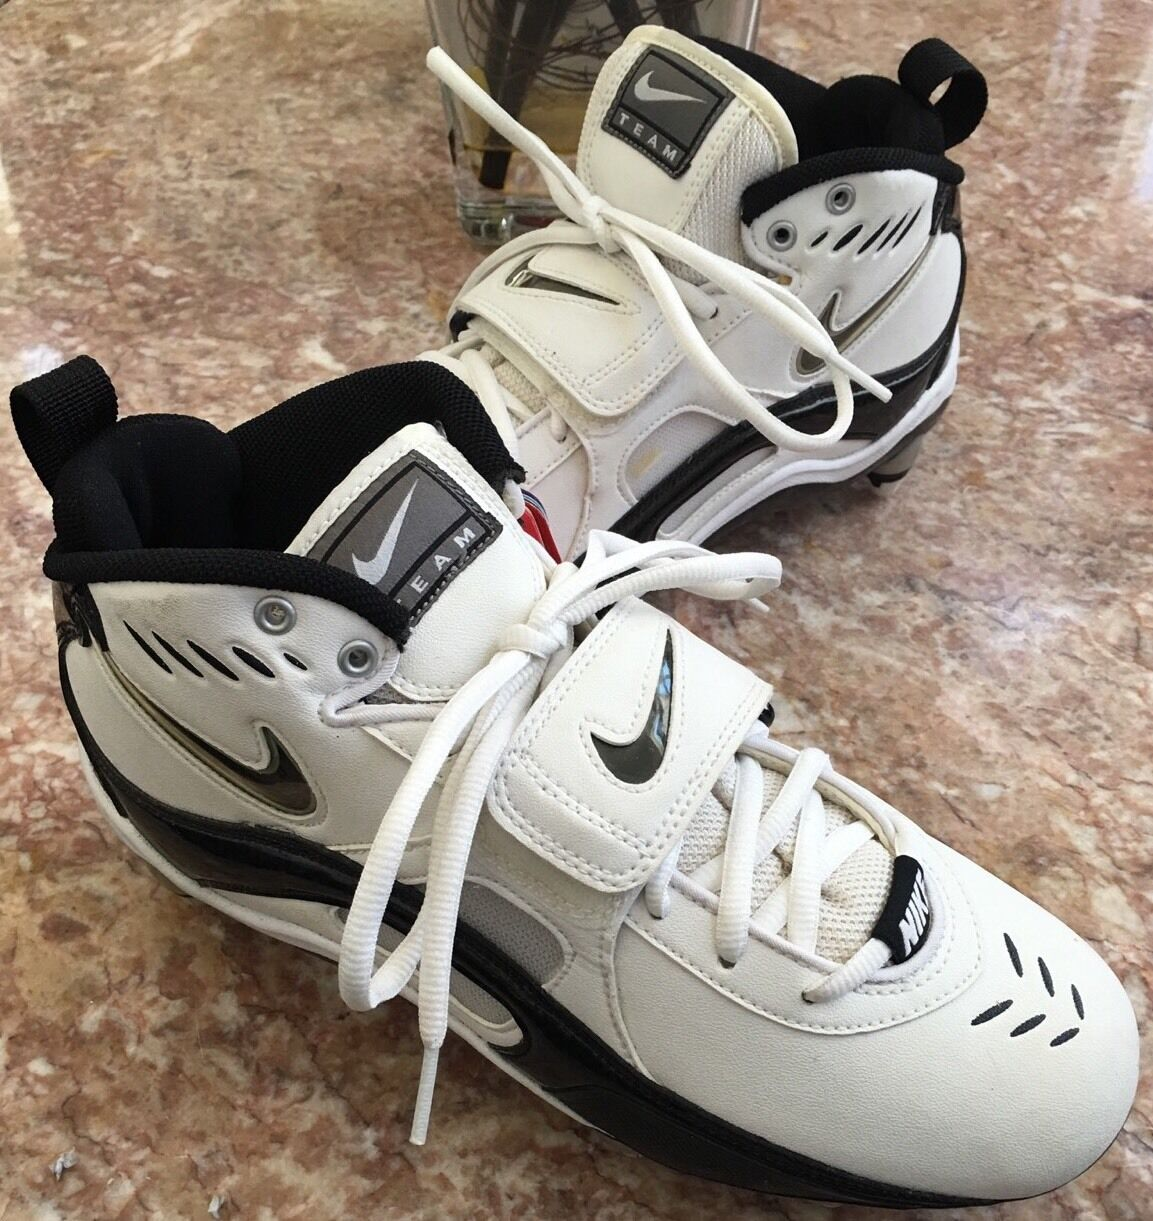 New Nike Men's Team Code D Football Cleats Shoes Size 7.5